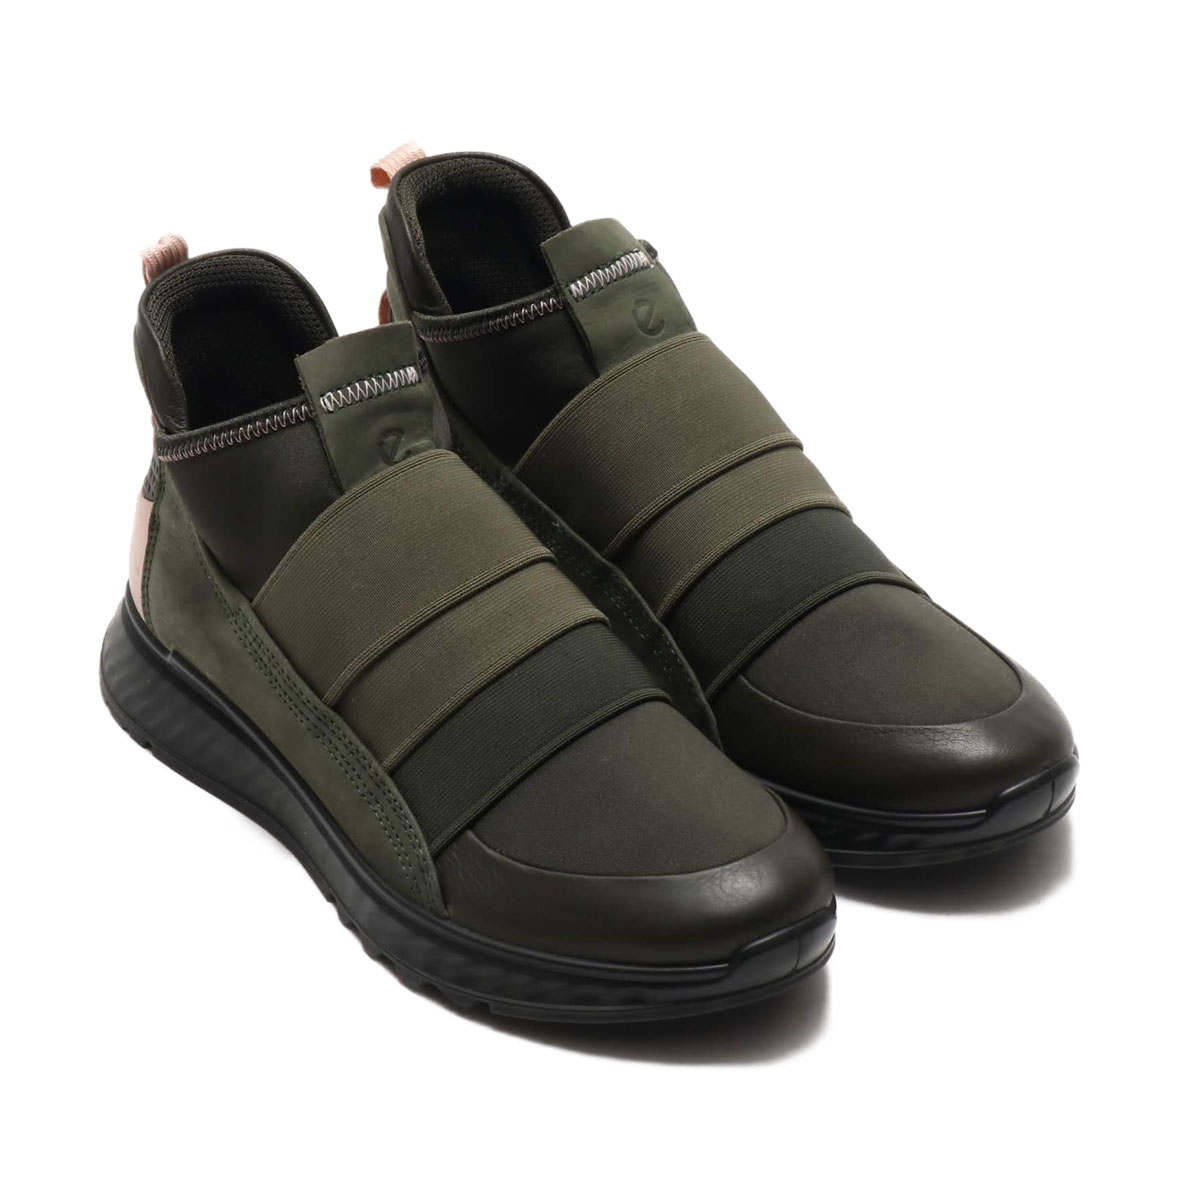 ECCO ST.1 W(エコー エスティー 1 W)DEEP FOREST/DEEP FOREST/ROSE DUST【レディース スニーカー】20SP-I